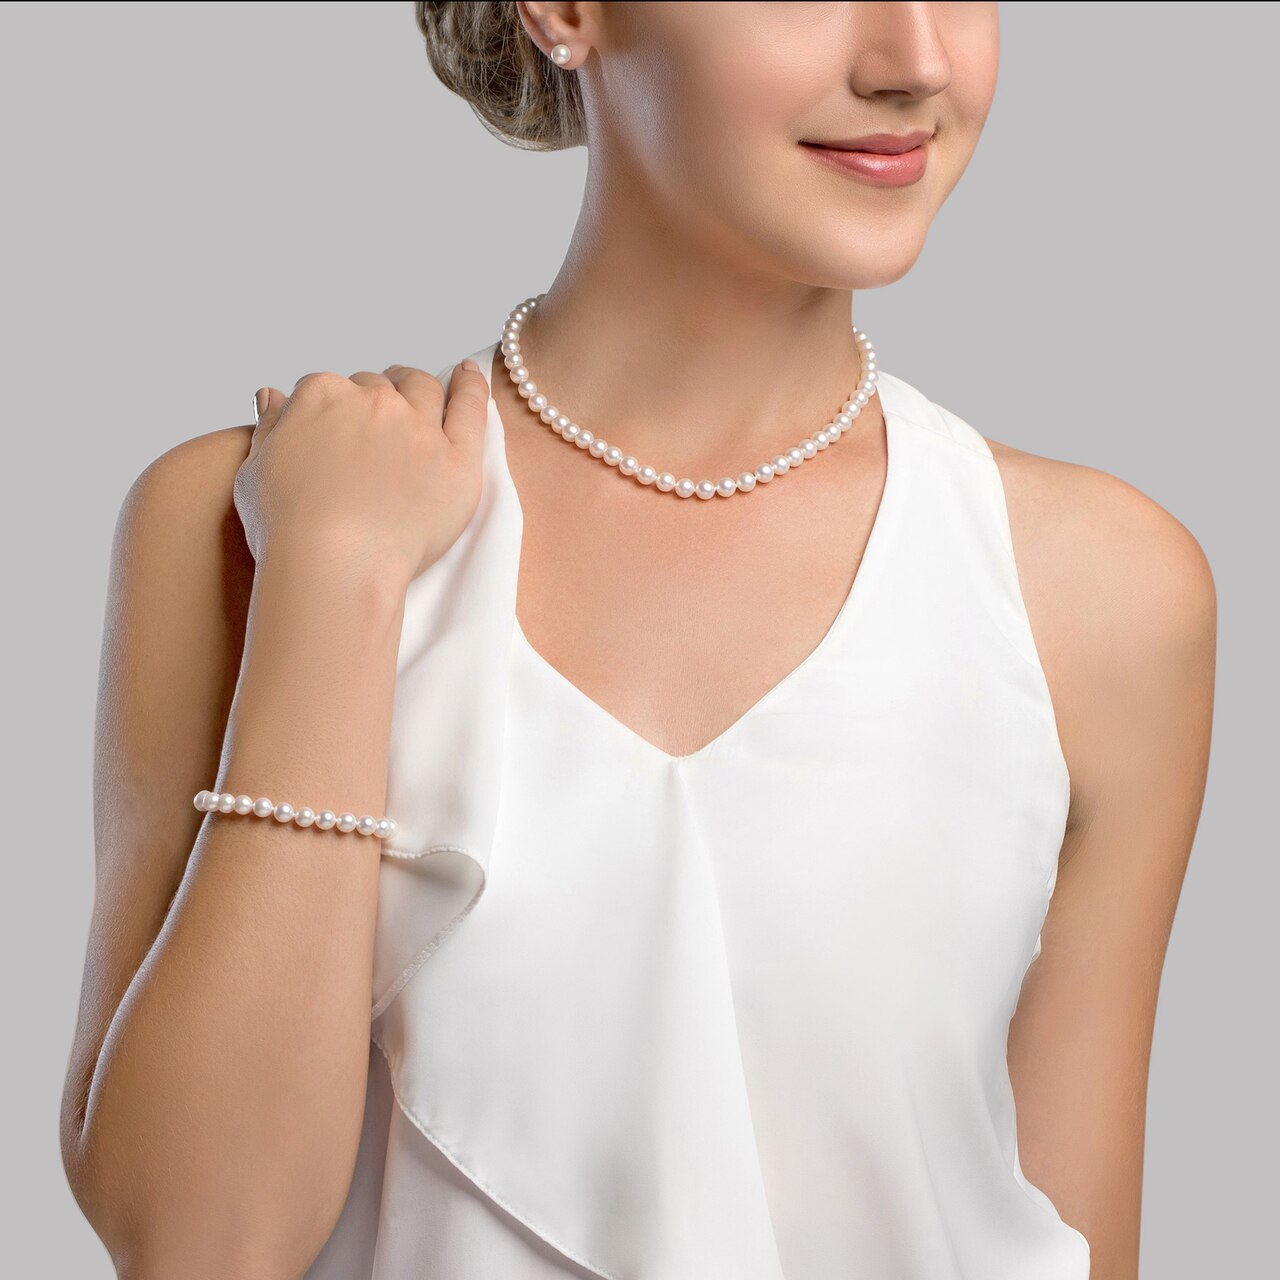 This classic necklace, bracelet and earring set features 7.5-8.0mm Japanese Akoya pearls